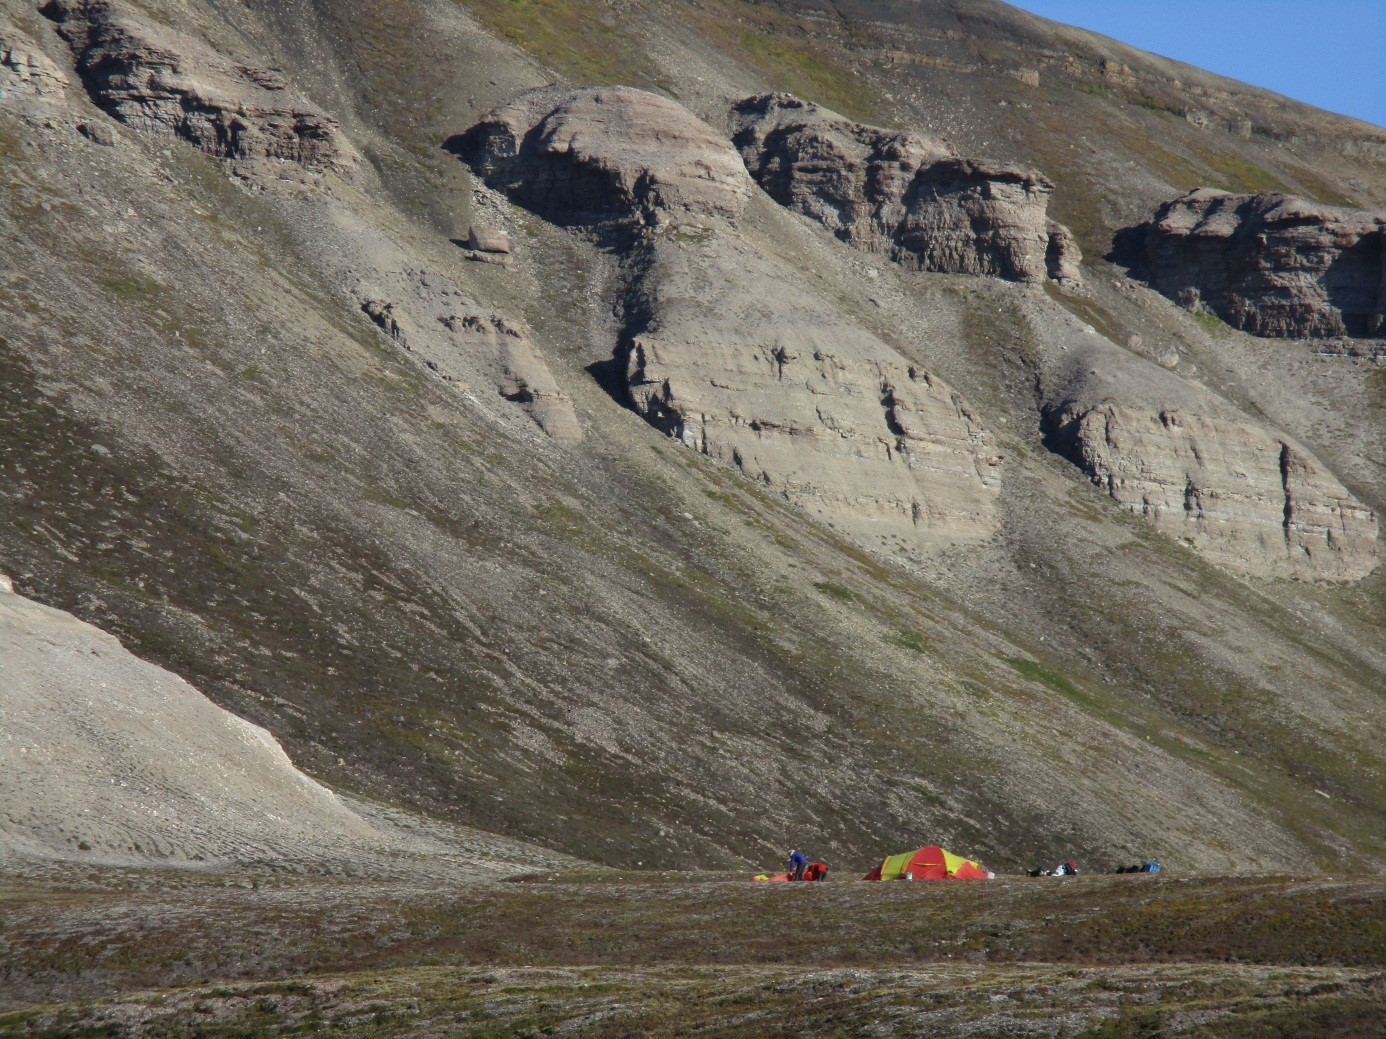 Putting up the tents on a sunny day in the Arctic. In the background you can see the upper parts of the Gipshuken Formation which here consists of dolostones, gypsum and fossiliferous carbonates.